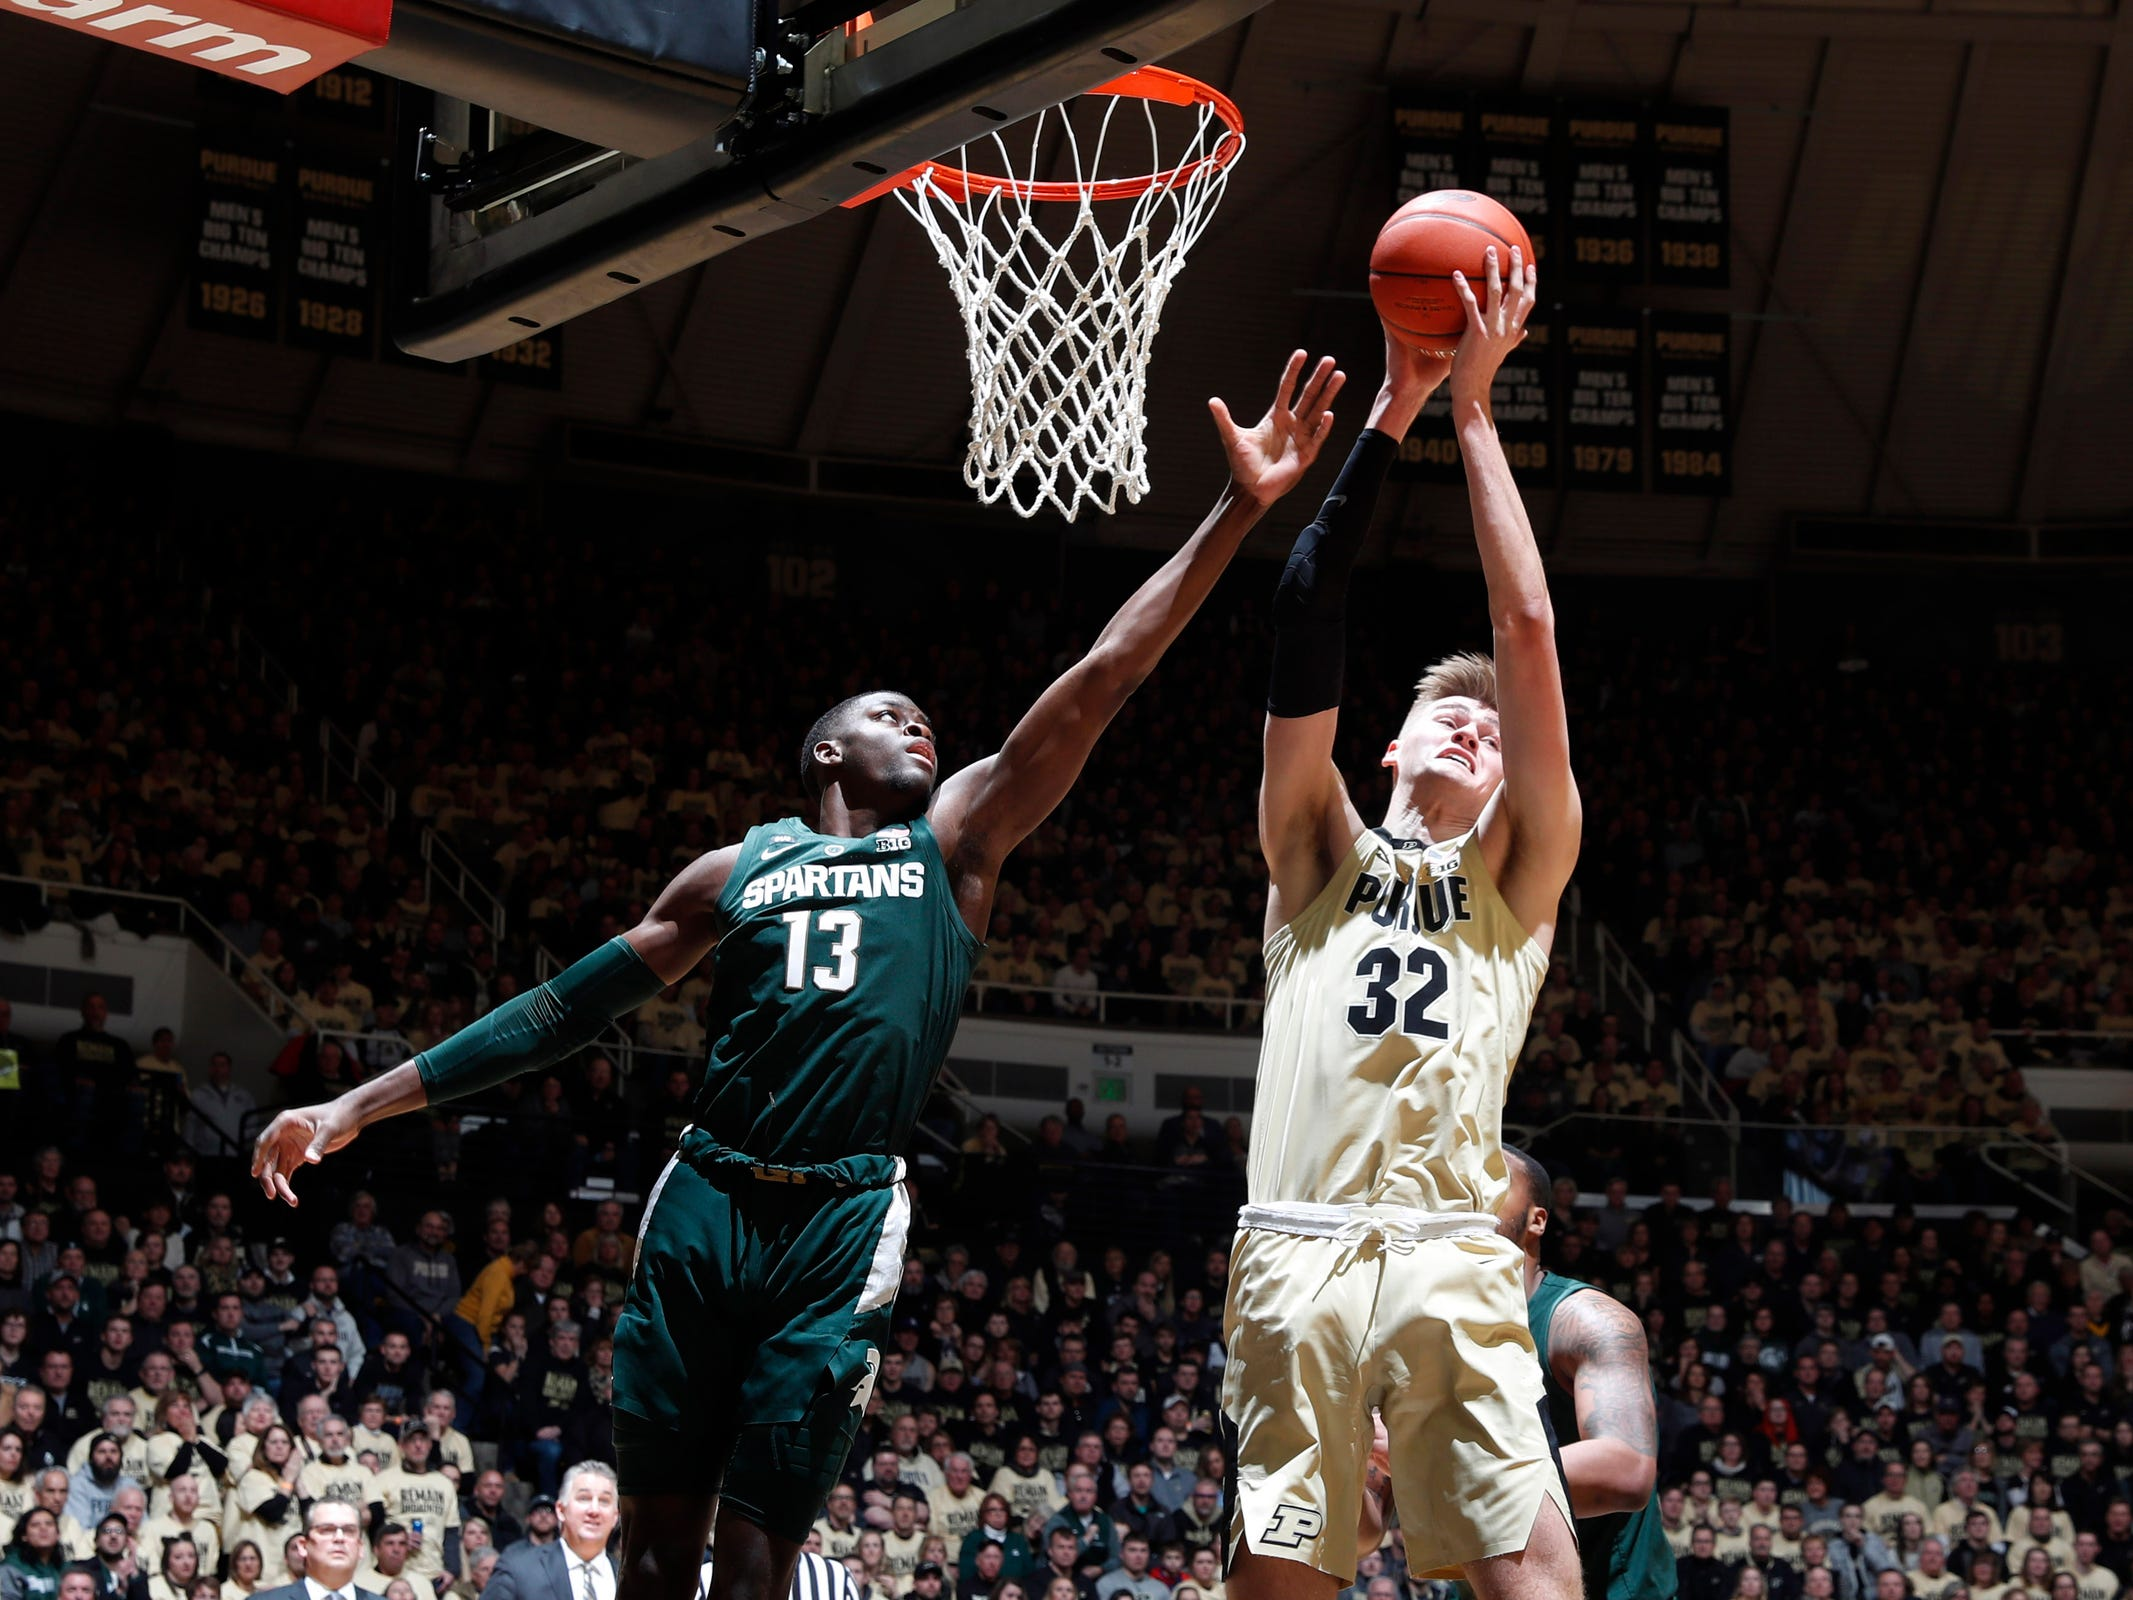 Michigan State forward Gabe Brown  battles for a rebound with Purdue center Matt Haarms during the first half on Sunday, Jan. 27, 2019, in West Lafayette, Ind.